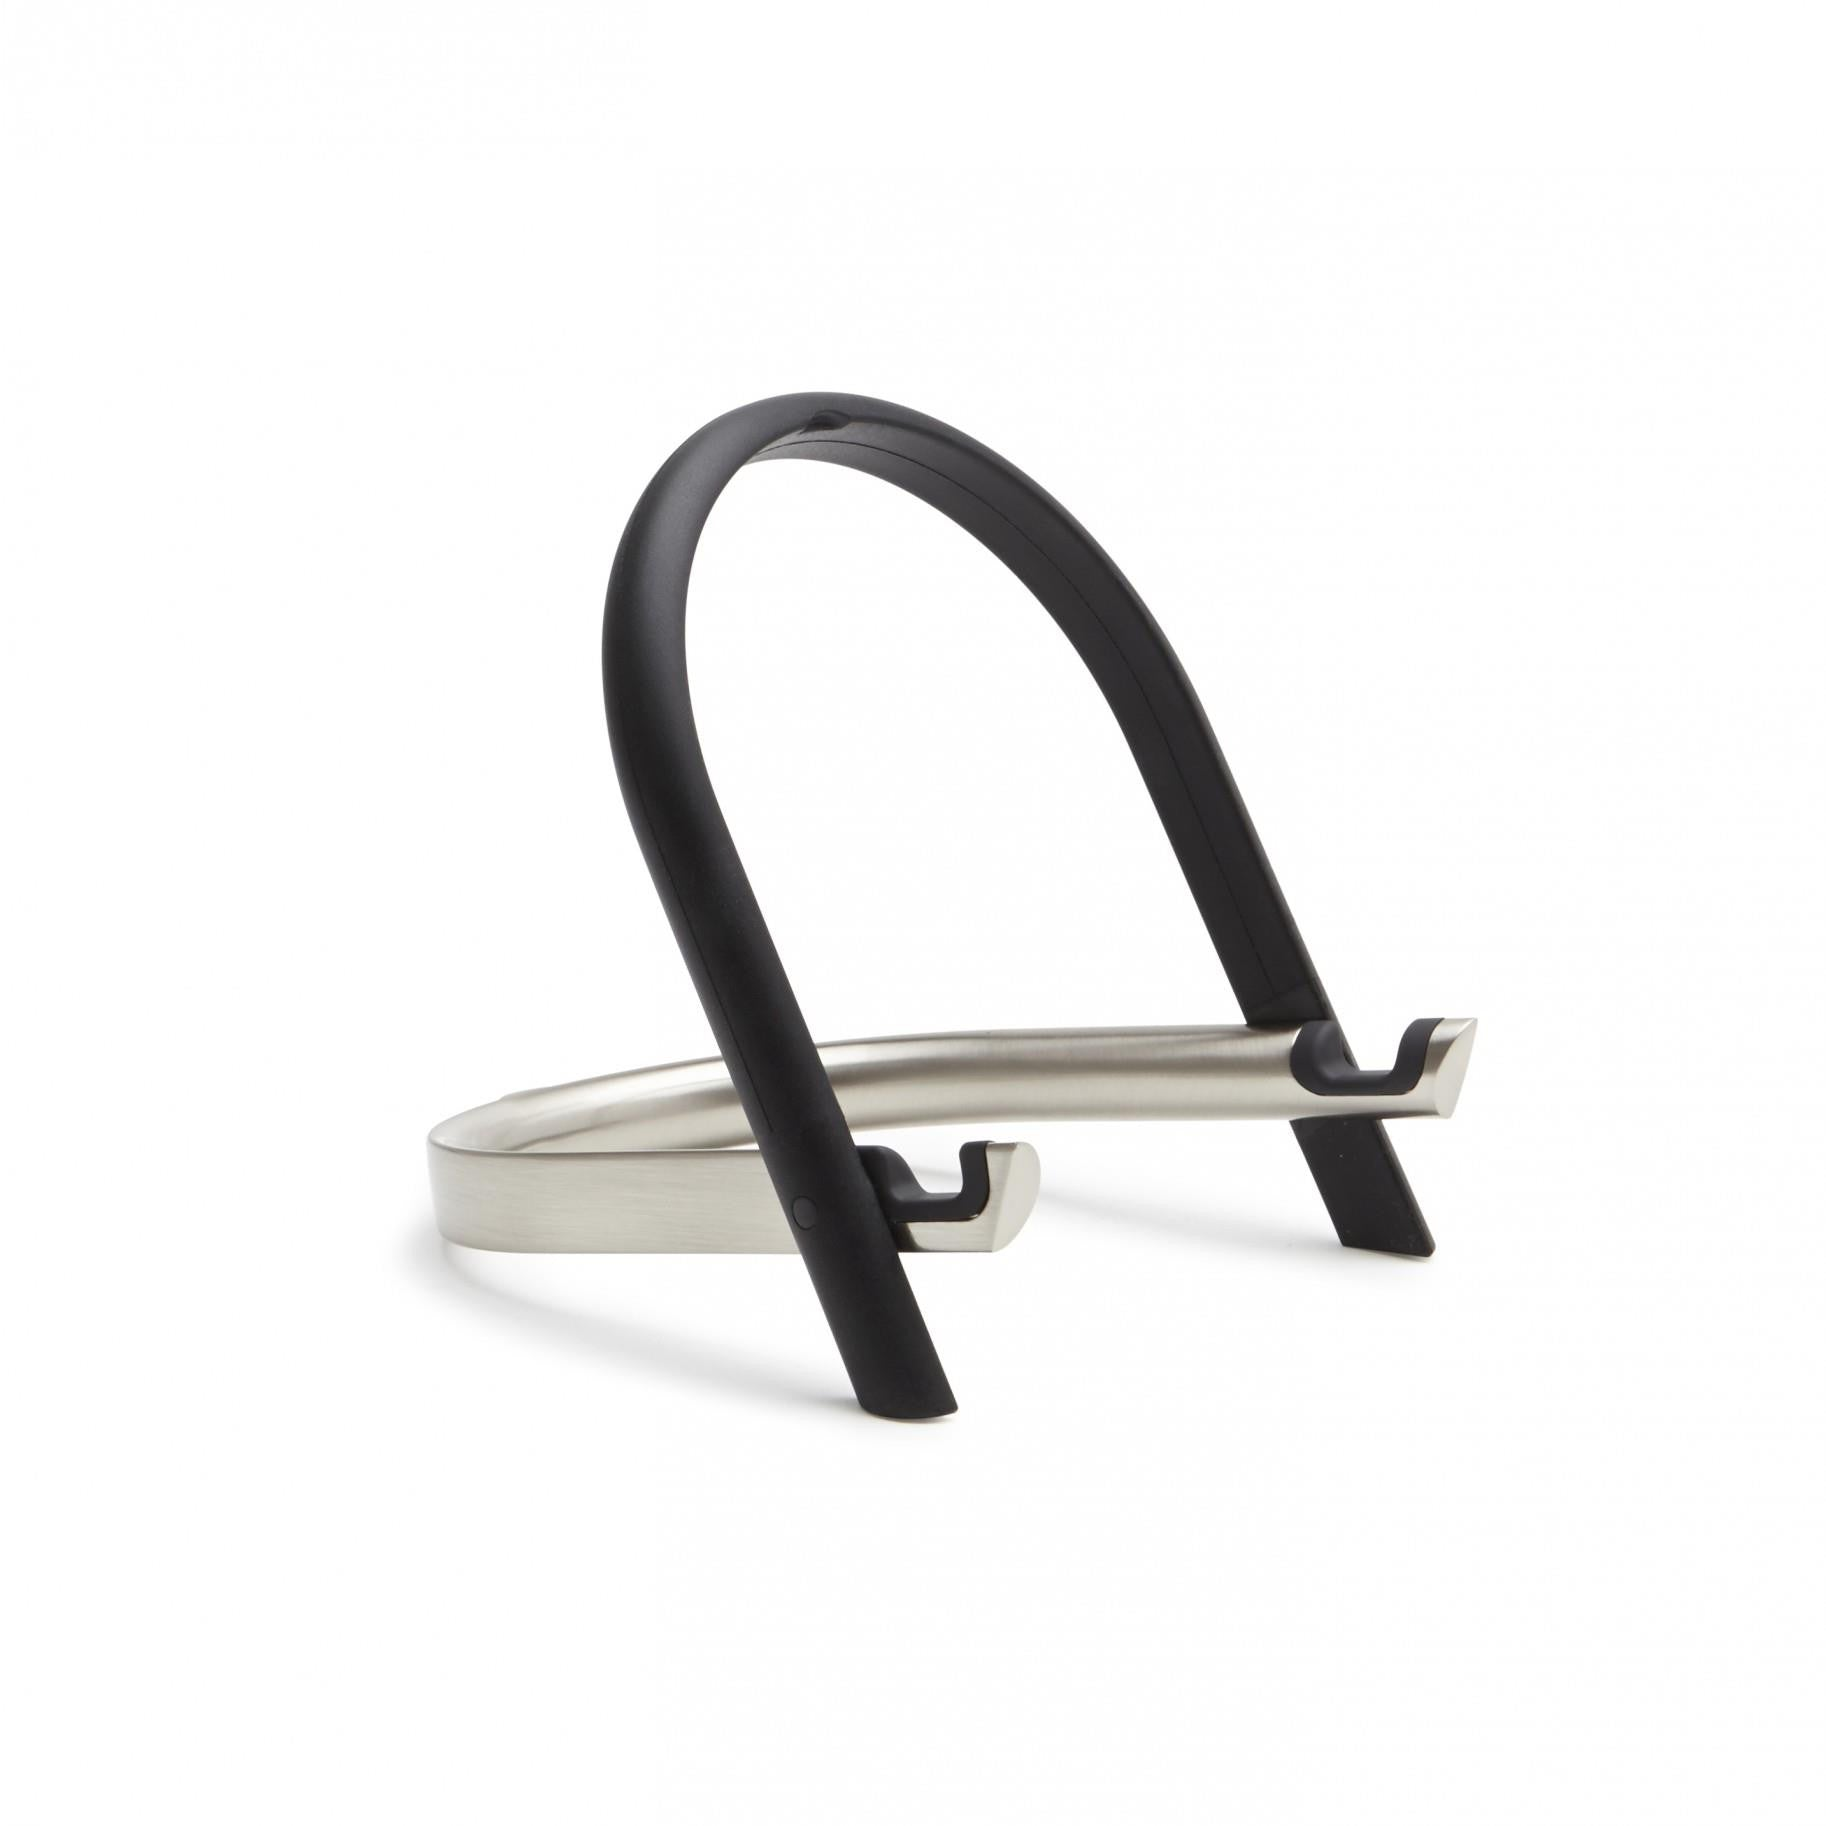 Umbra UDOCK Tablet IPad Holder